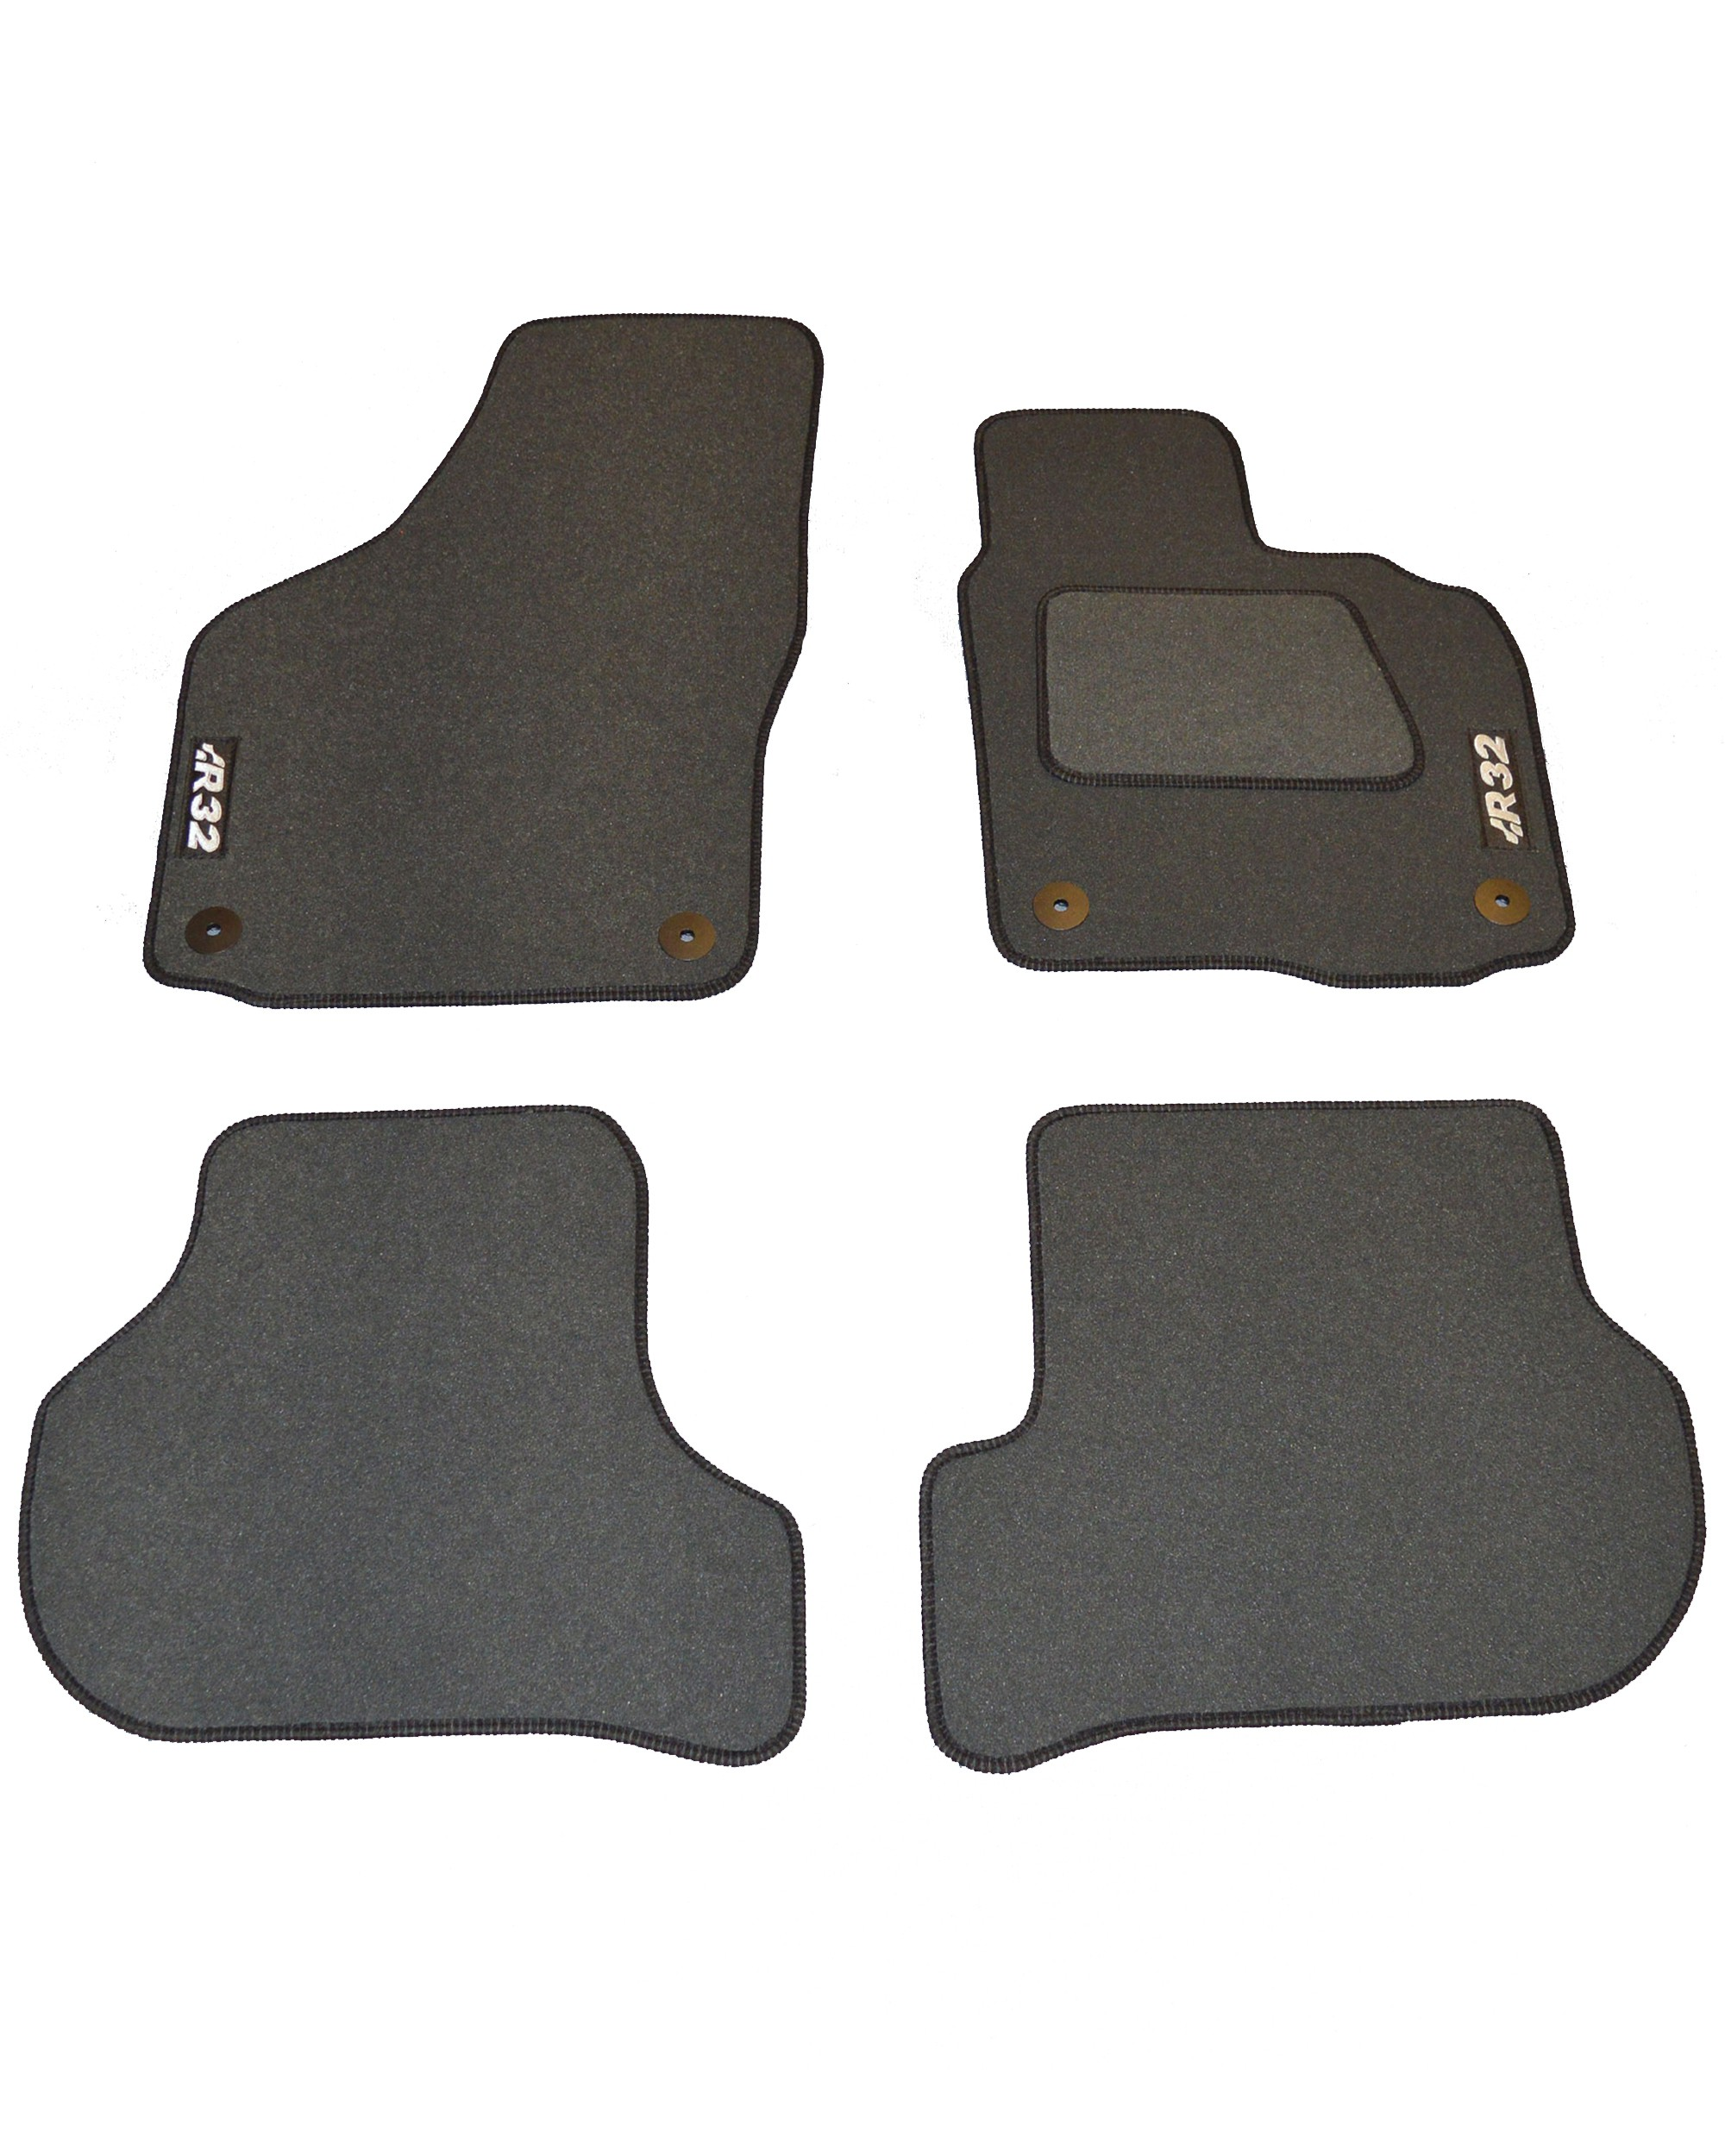 Golf R32 MK4 Car Mats full set